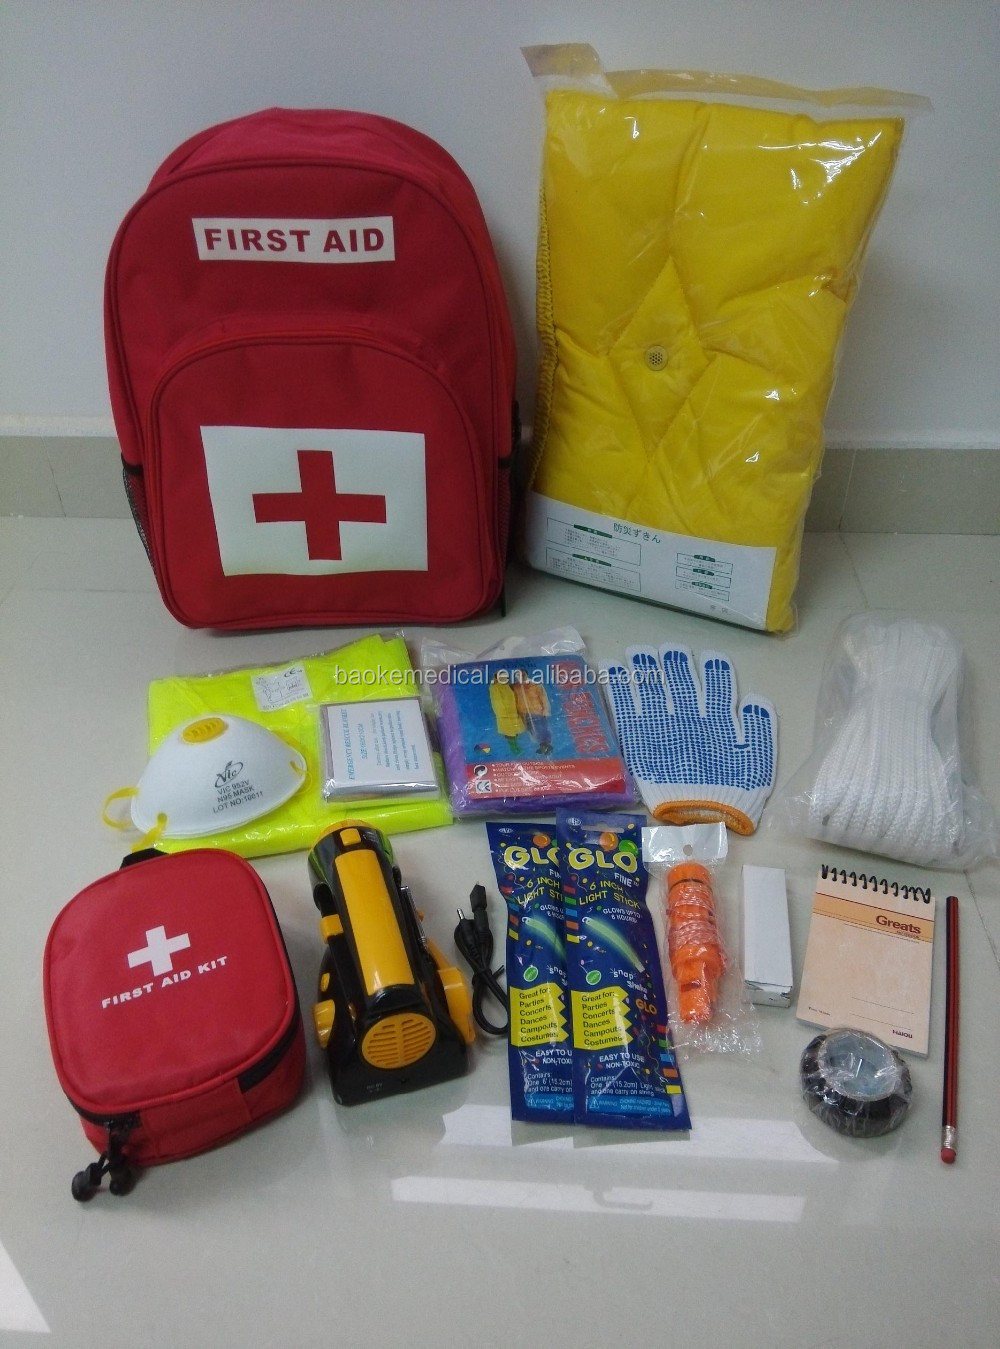 BK-E01 backpack type disaster survival first aid kit